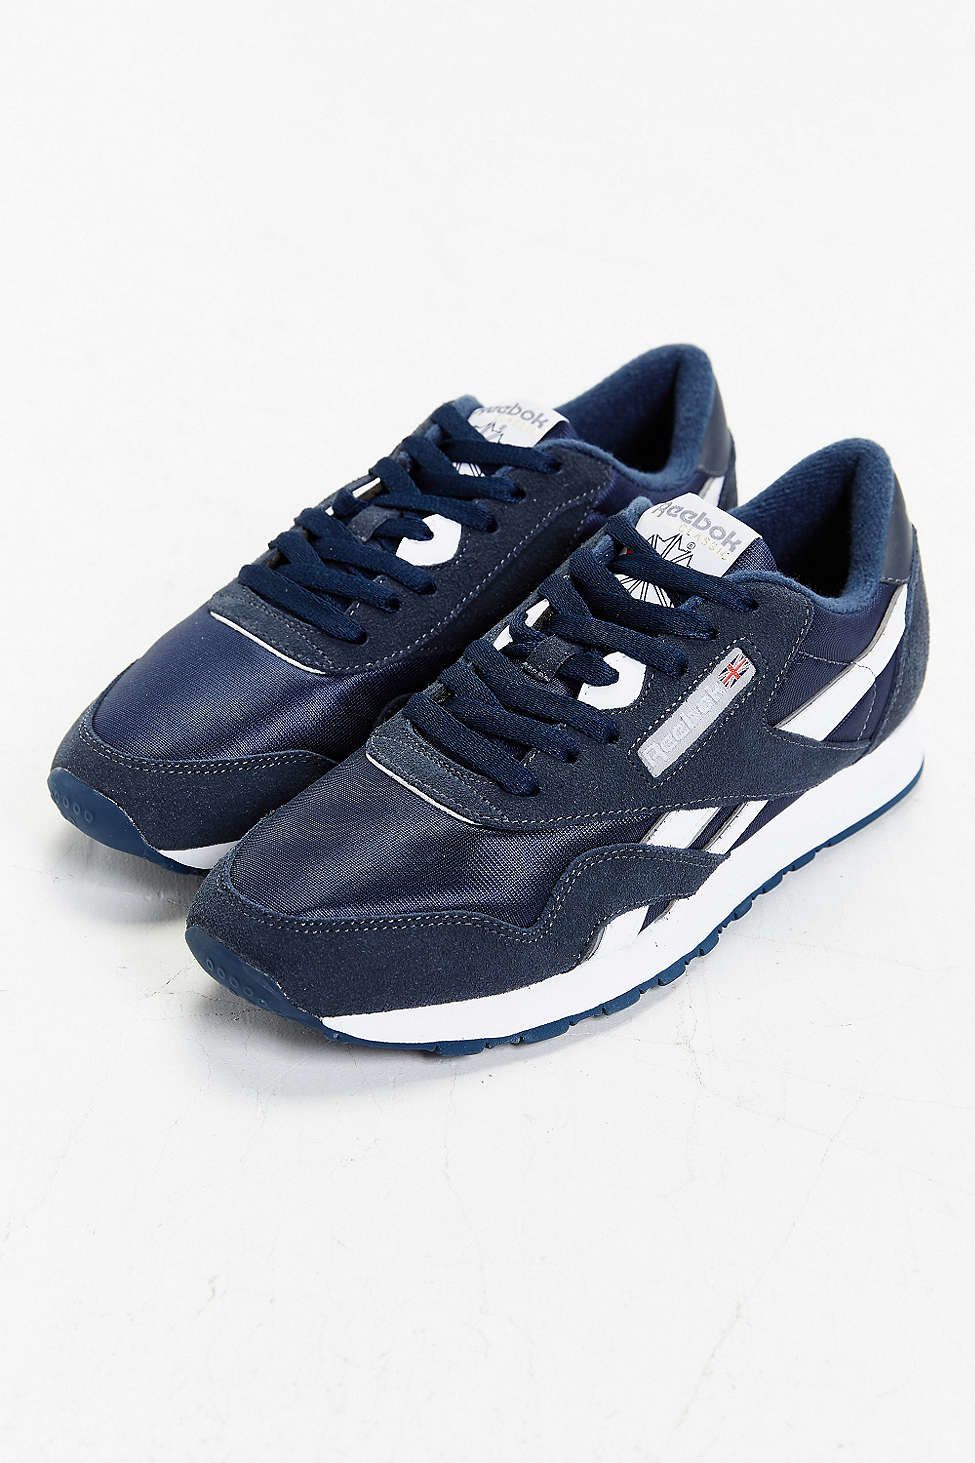 827a3e8f74321 Lyst - Reebok Classic Nylon Sneaker in Blue for Men